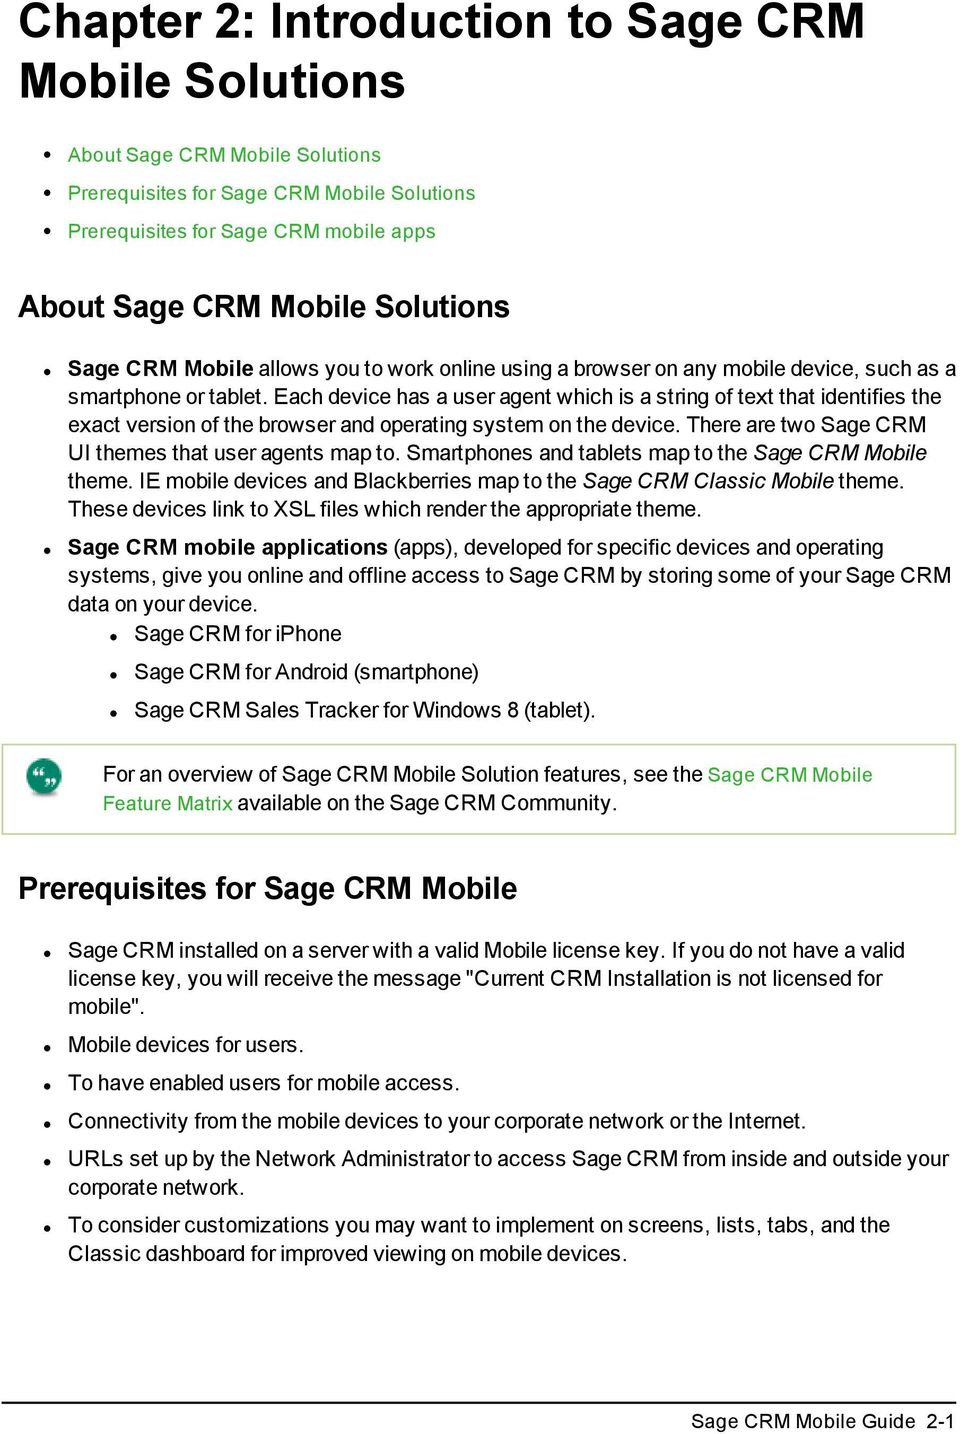 Each device has a user agent which is a string of text that identifies the exact version of the browser and operating system on the device. There are two Sage CRM UI themes that user agents map to.